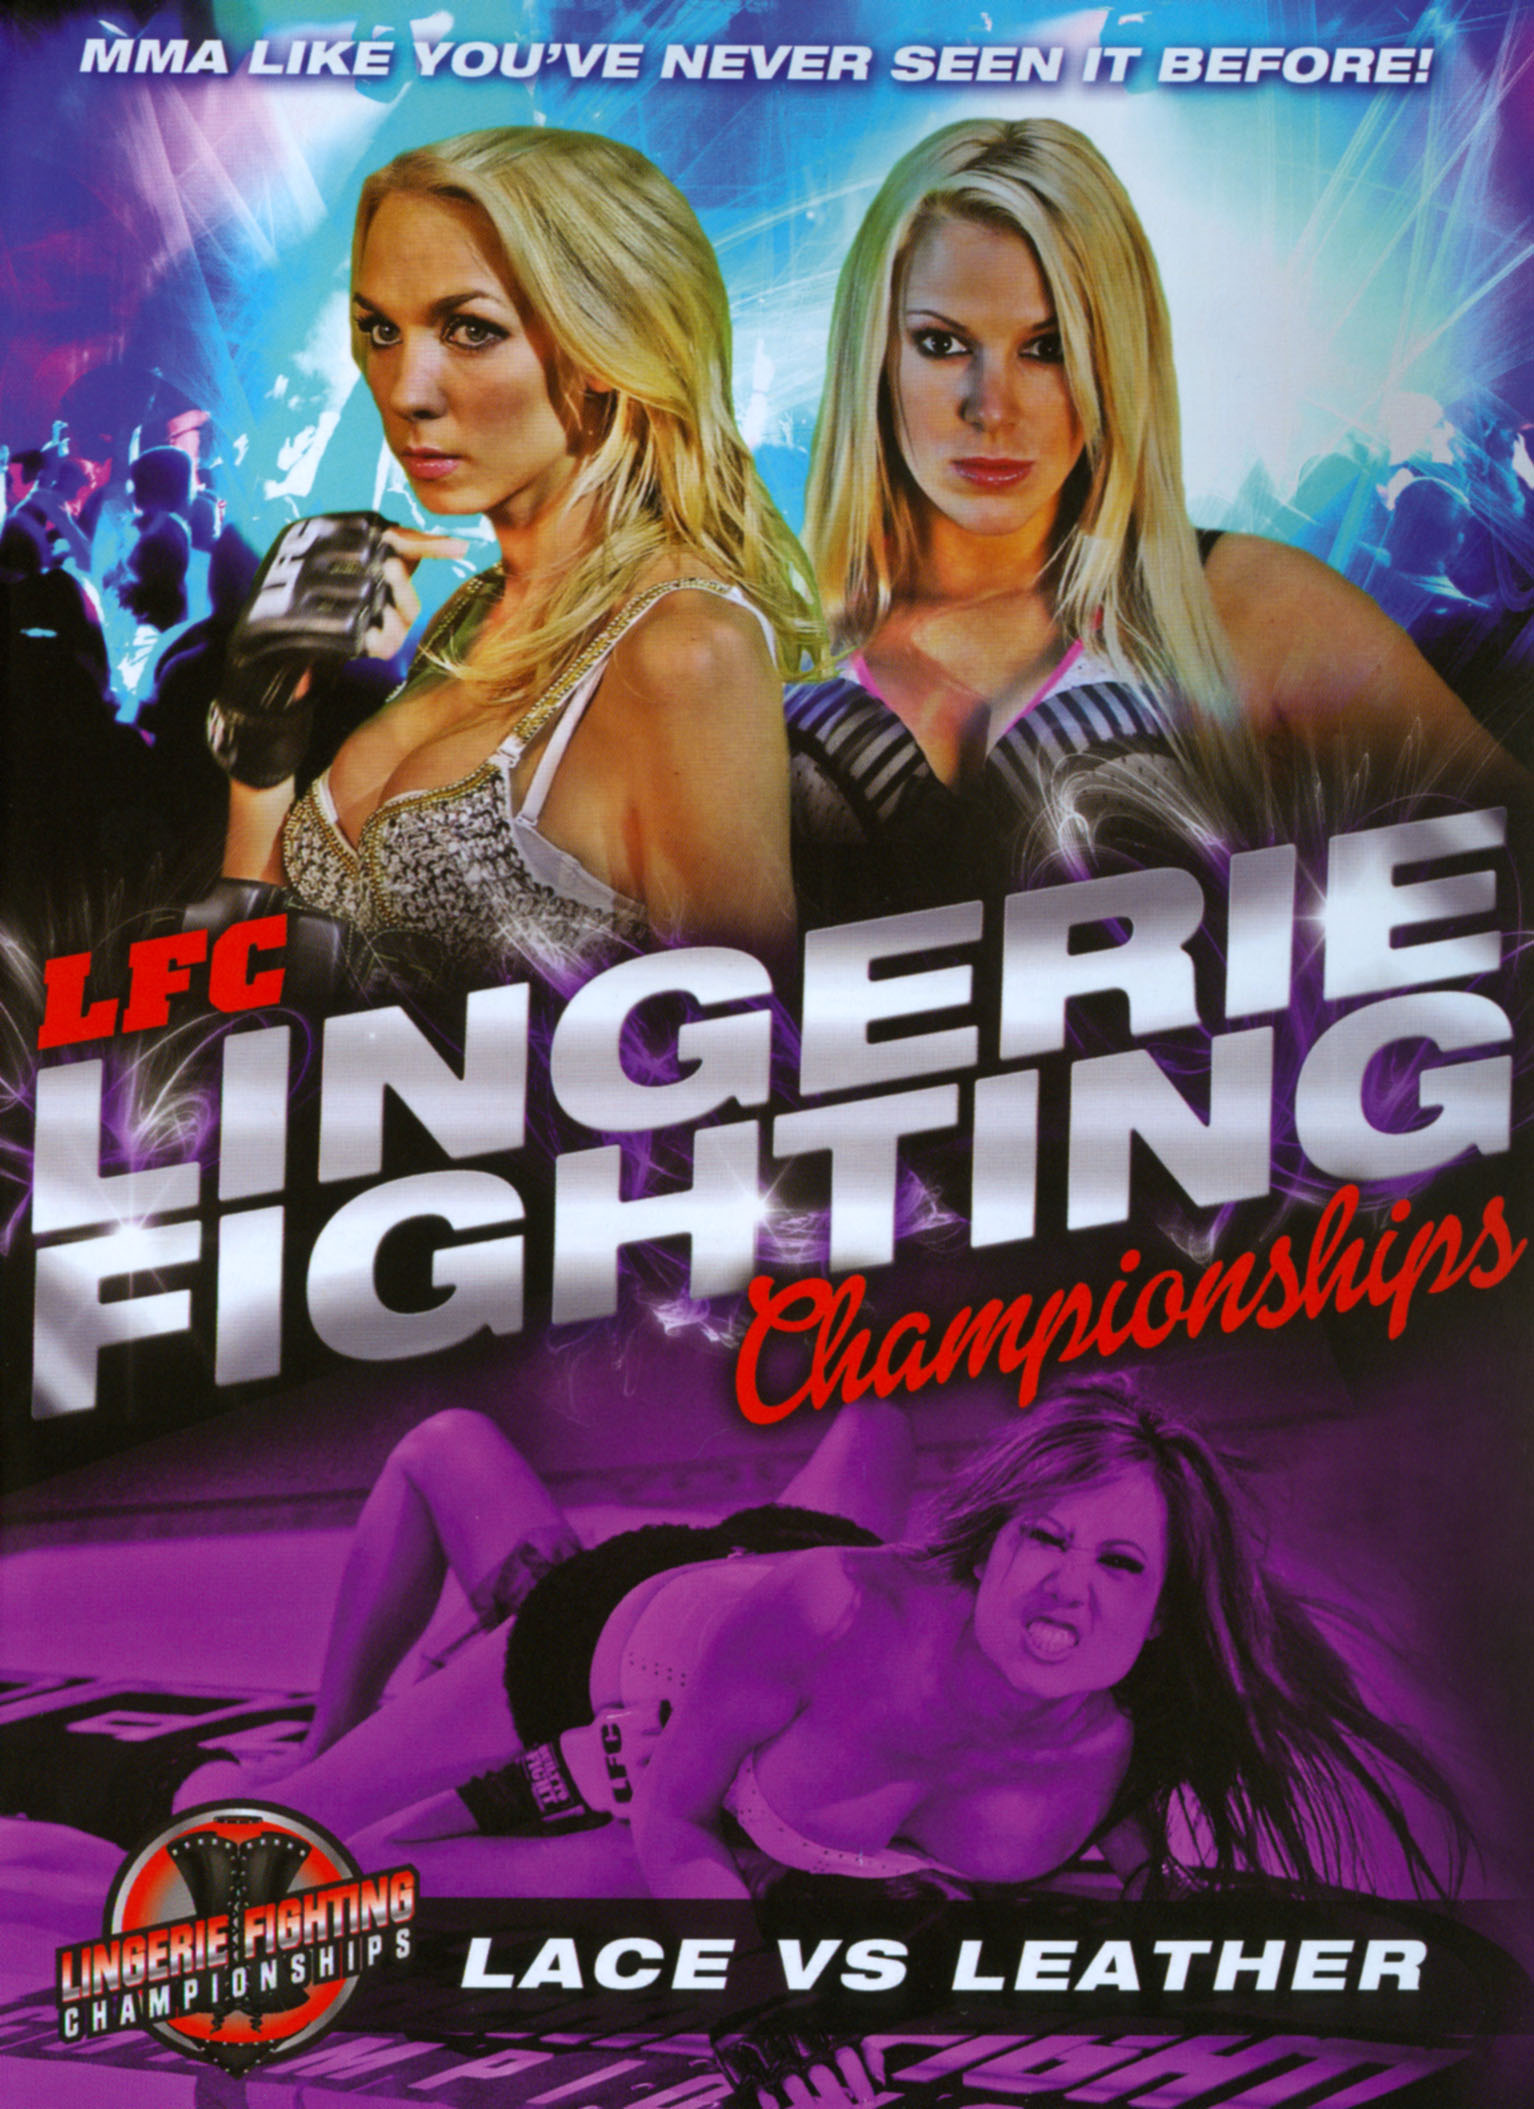 LFC: Lingerie Fighting Championships